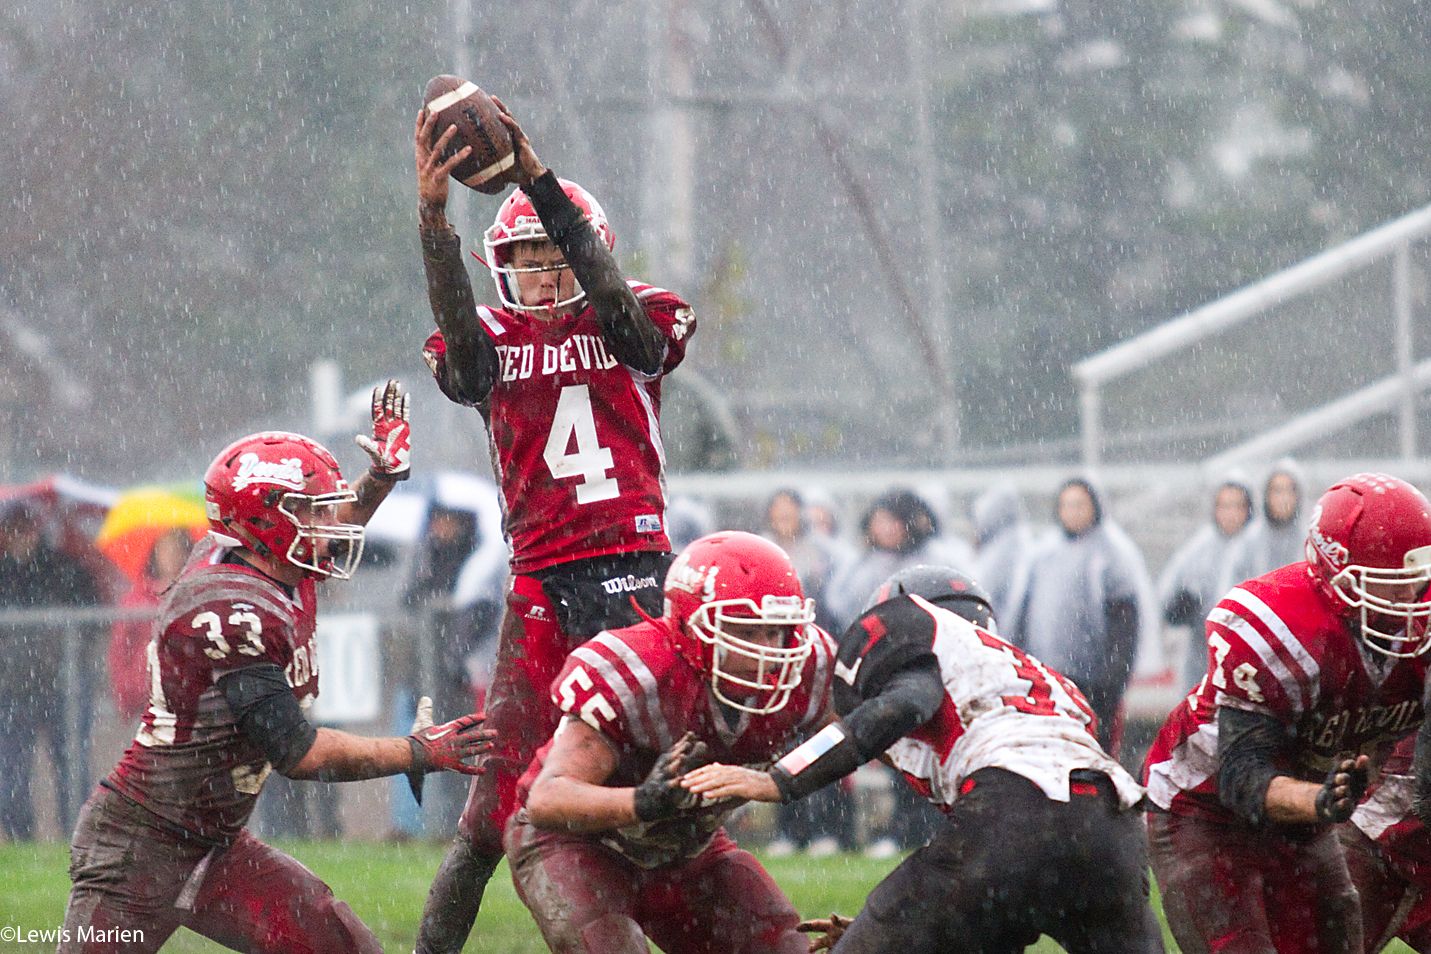 Spring Valley Hall's Drew Pullam (4) hikes the ball during the Red Devils' IHSA Class 2A first round playoff game with the United Red Storm on Oct. 31 at Richard Nesti Stadium in Spring Valley, Ill. The Red Devils beat the Red Storm 34-0.